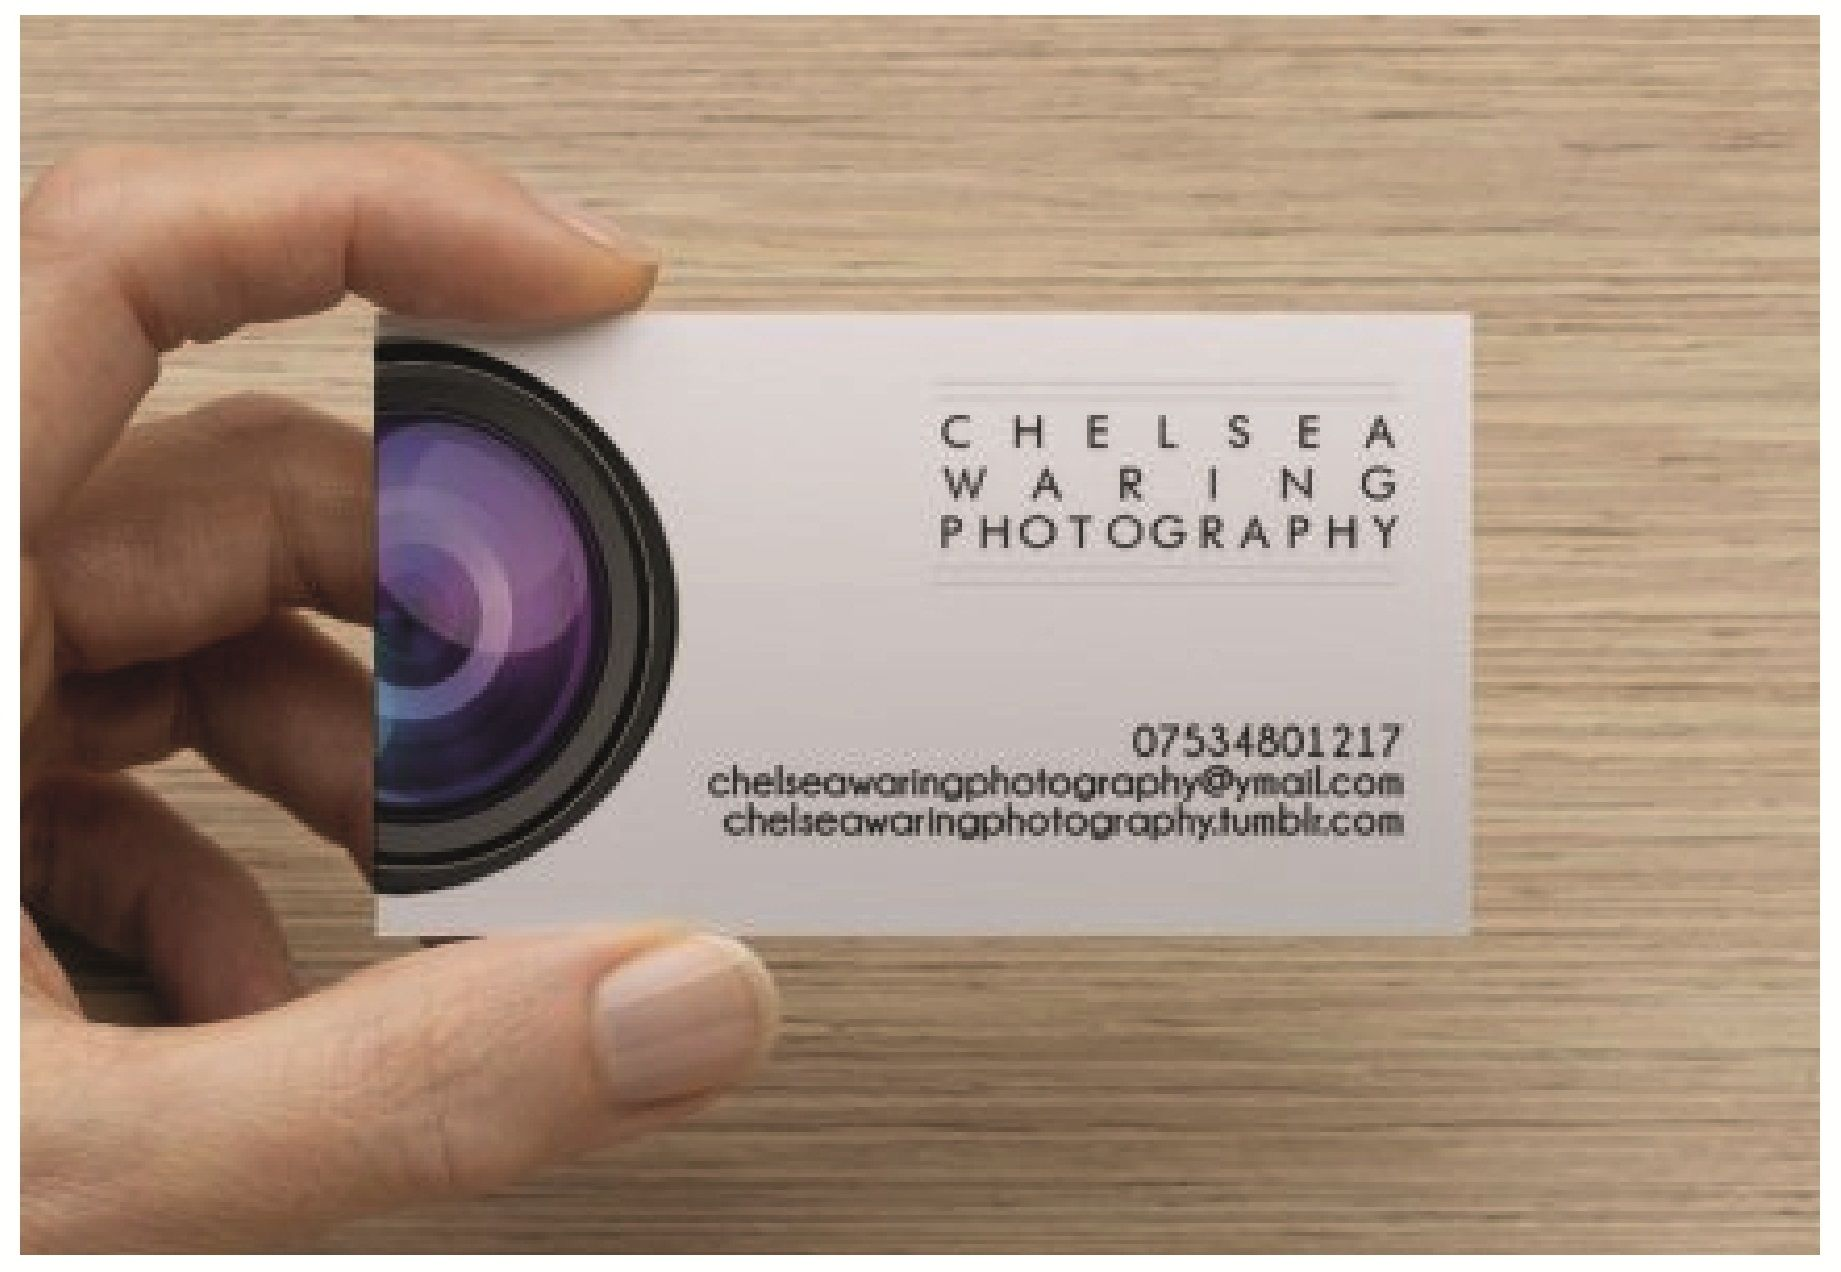 Chelsea Waring Photography – Business Cards | Photography business ...